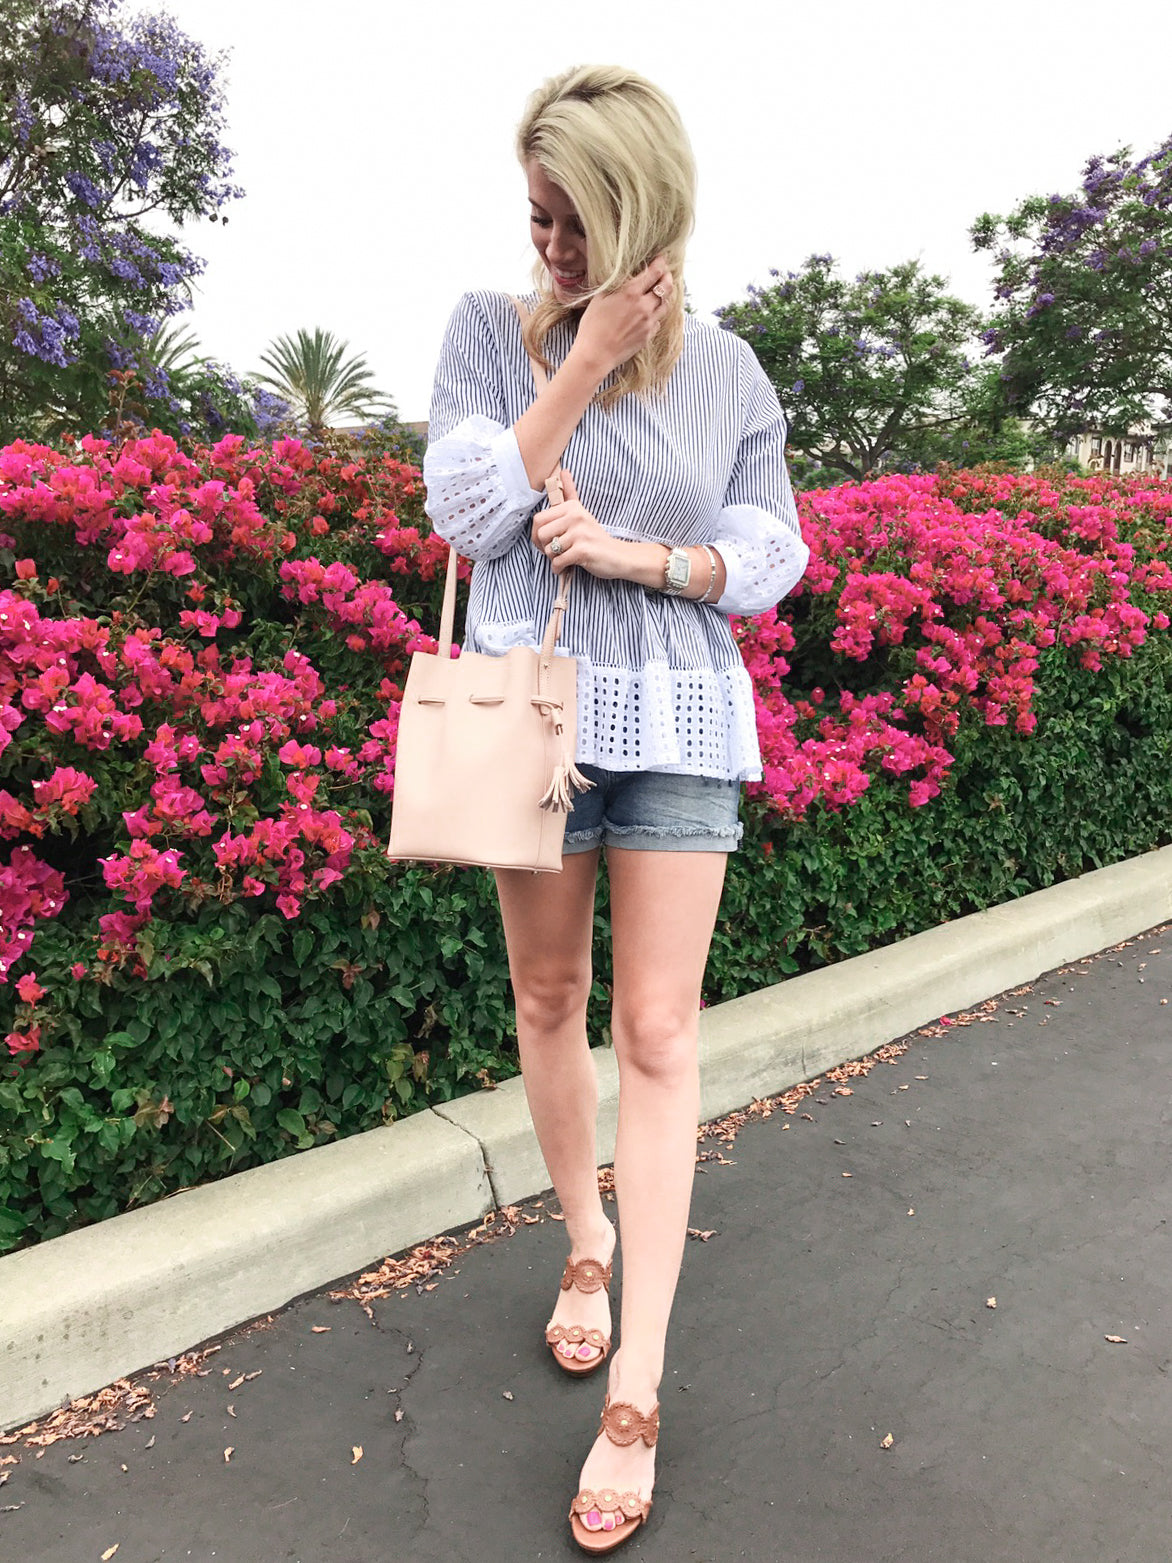 CASUAL BLUE & WHITE EYELET TOP by @alismithstyle